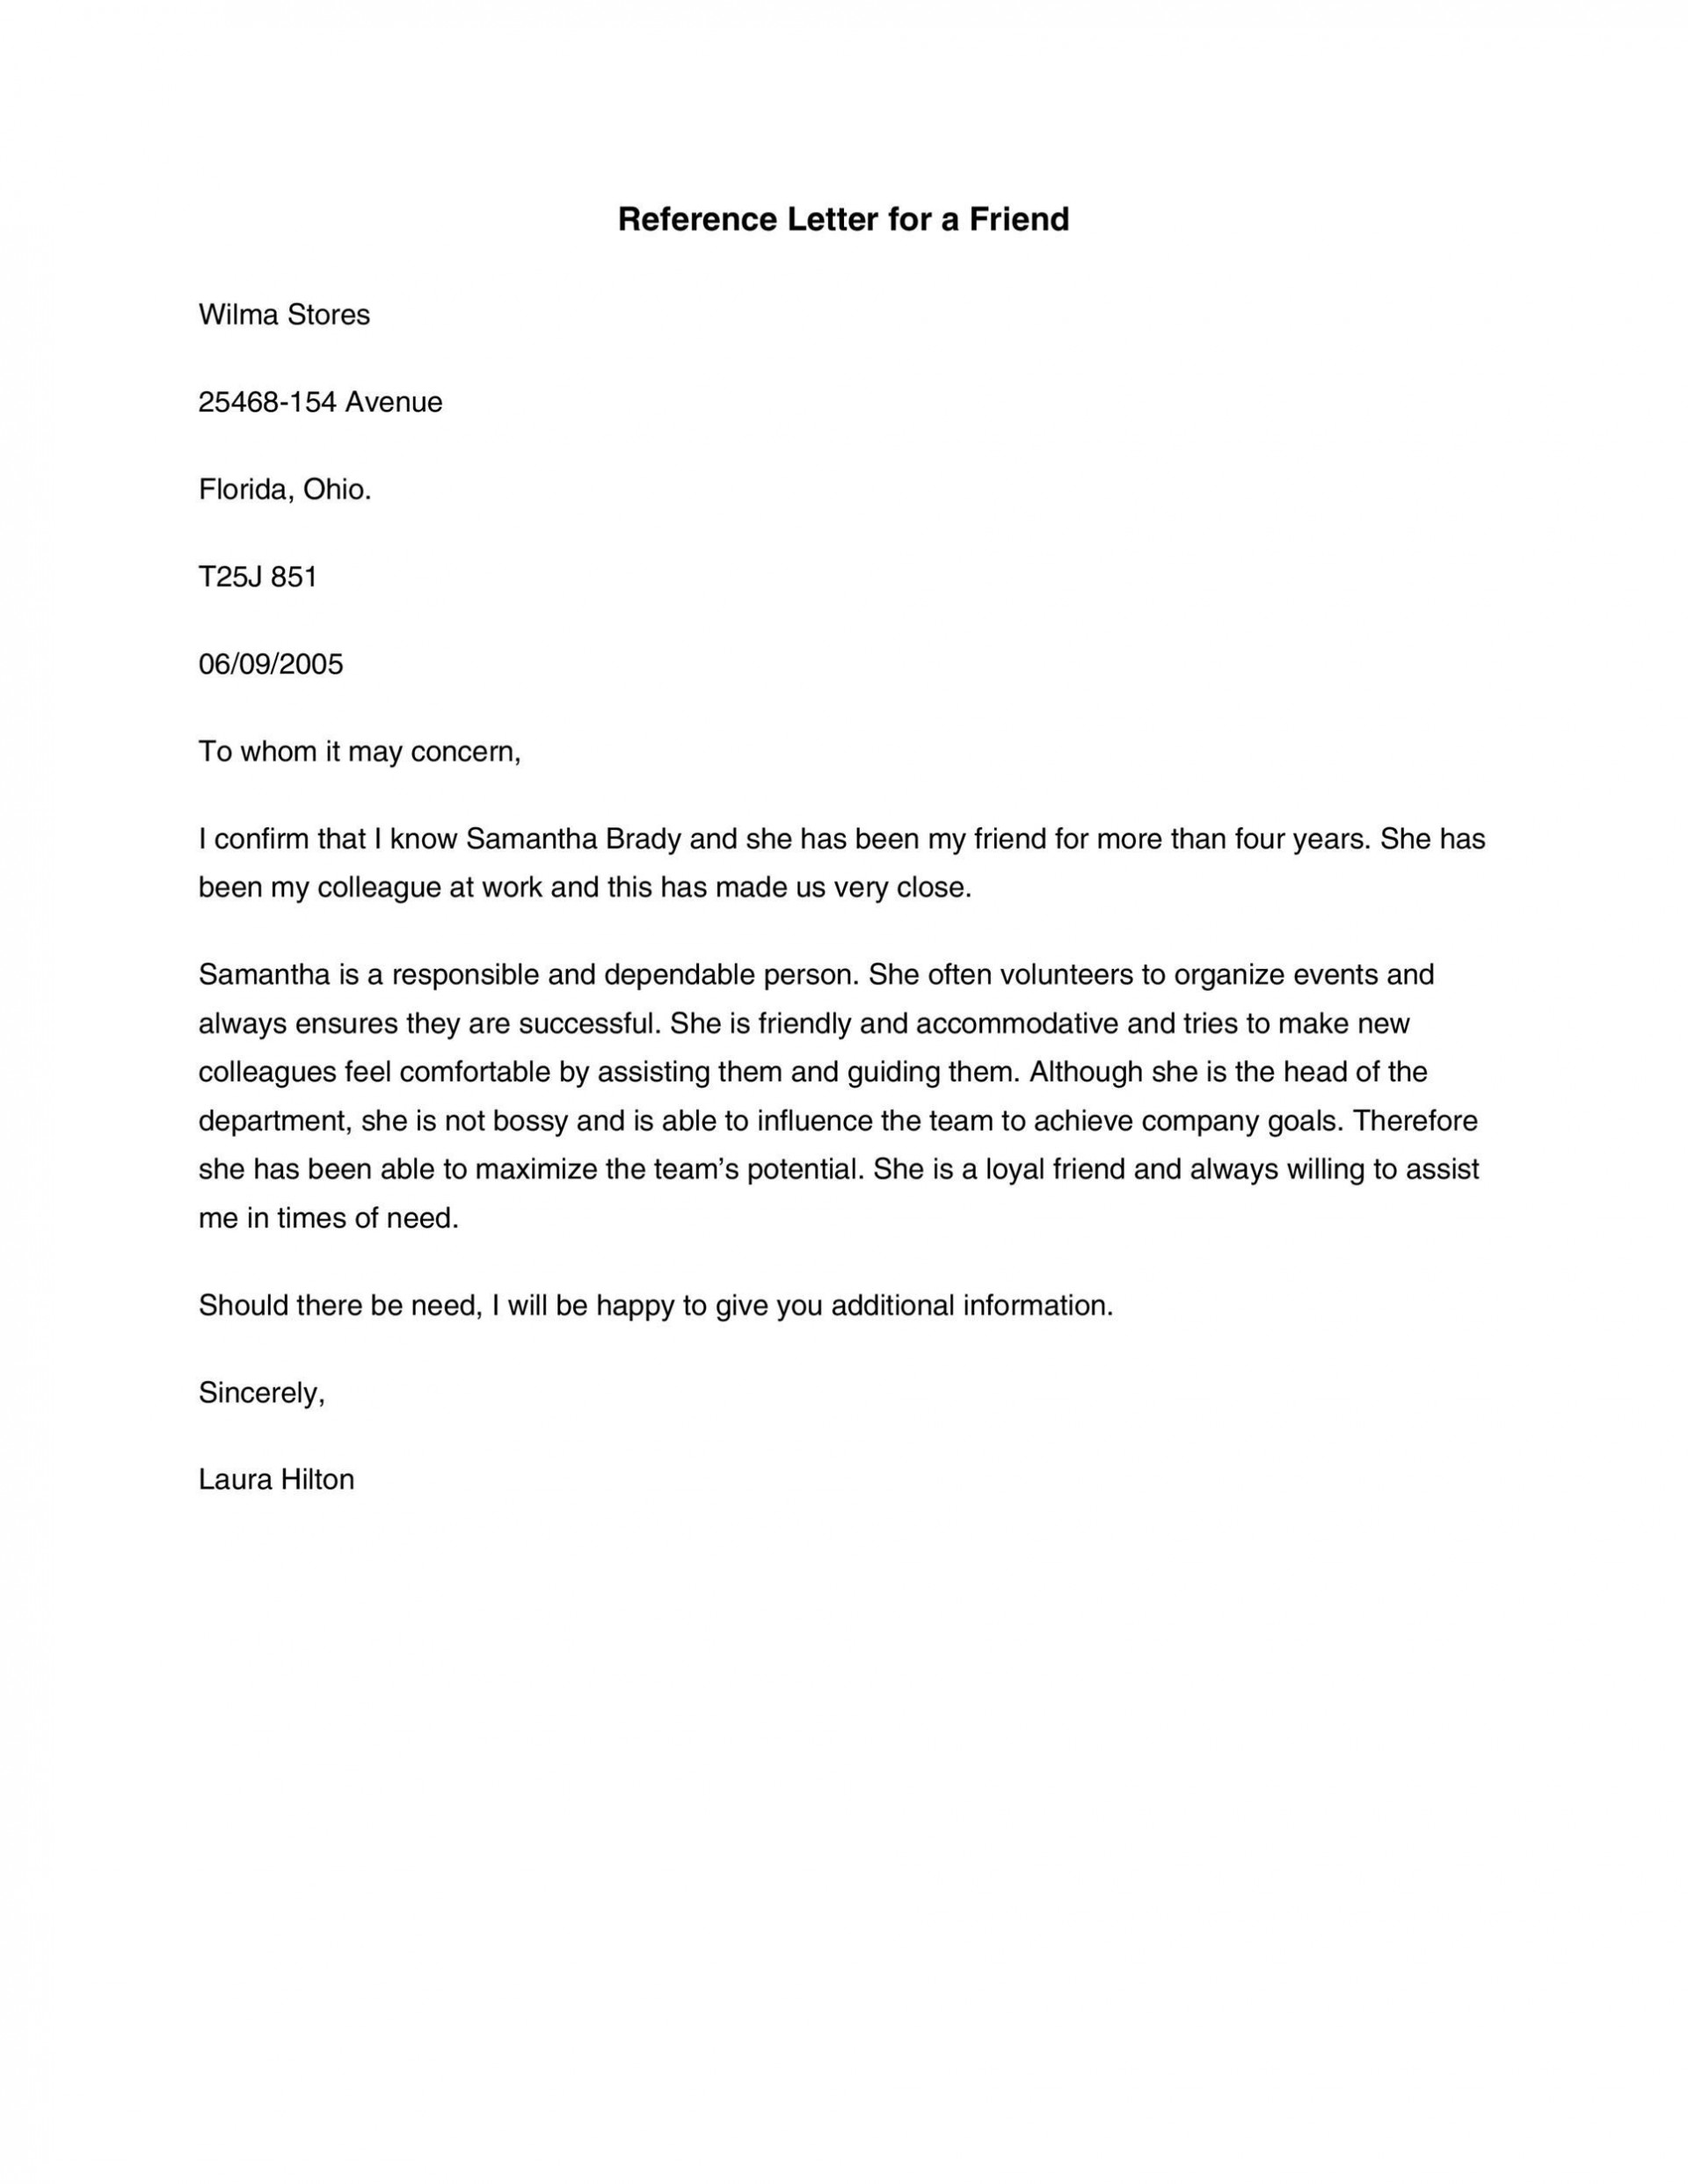 007 Astounding Free Reference Letter Template For Friend Example 1920